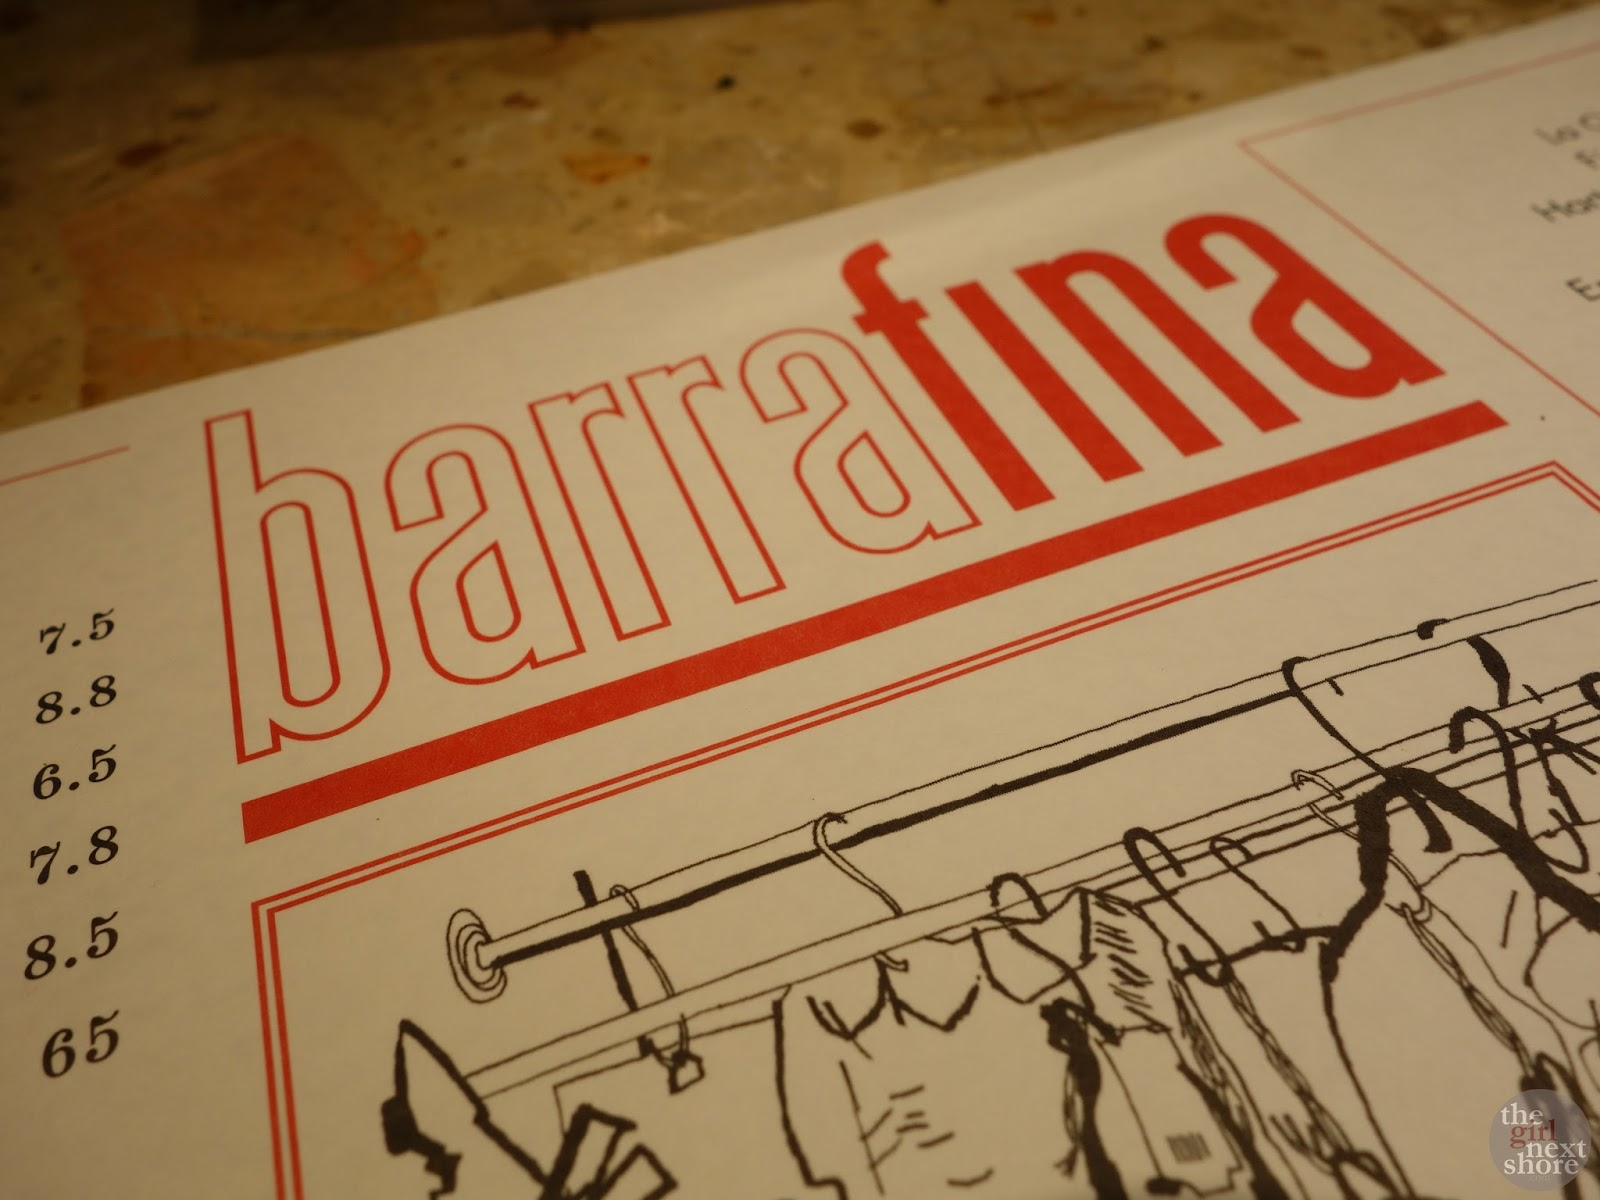 Barrafina (Adelaide St): where the sister (restaurant) struts off her stuff